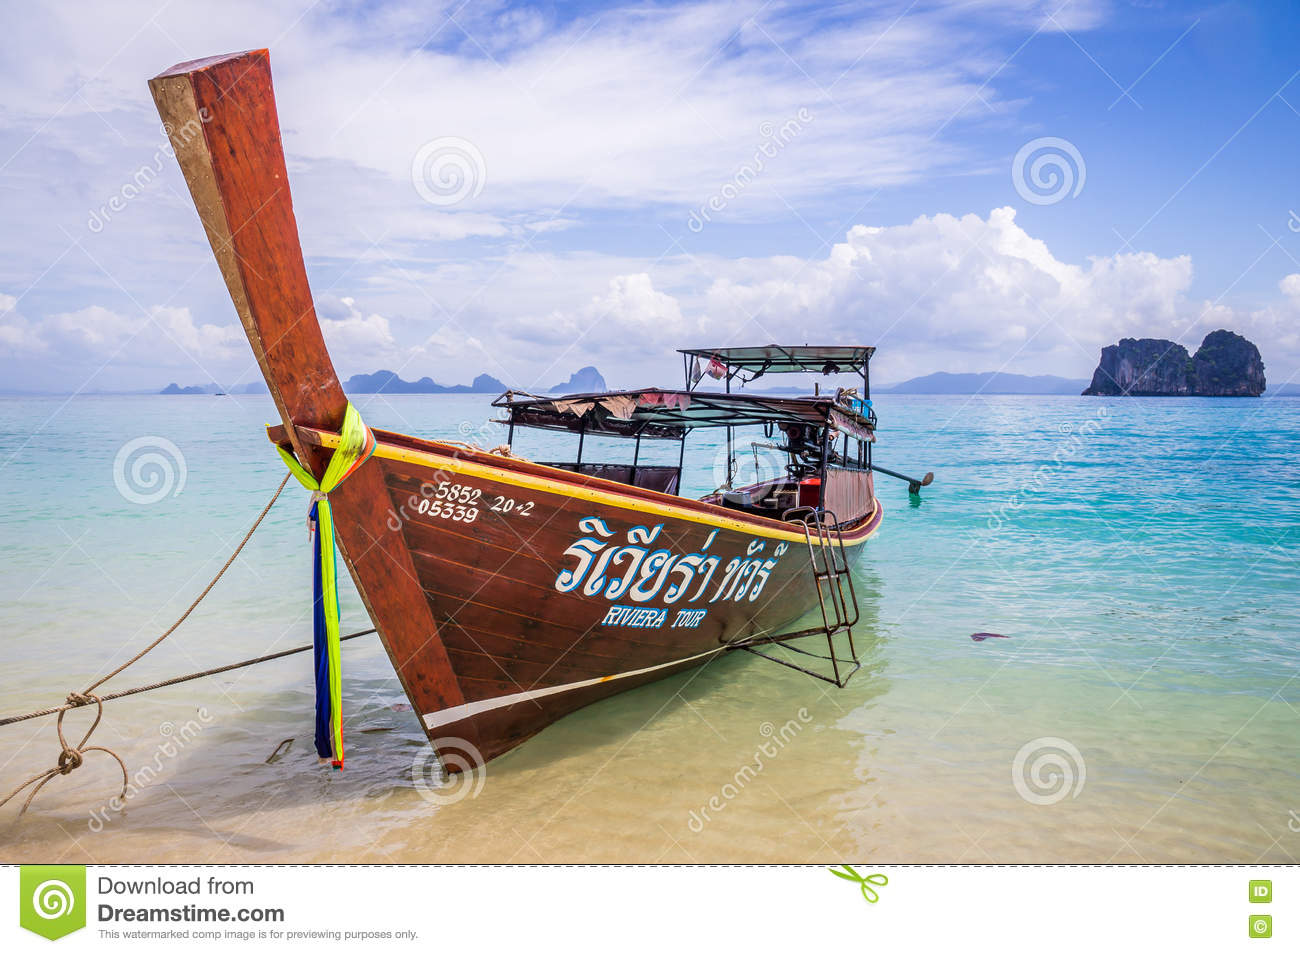 Longtail-Boot auf Strand in Thailand